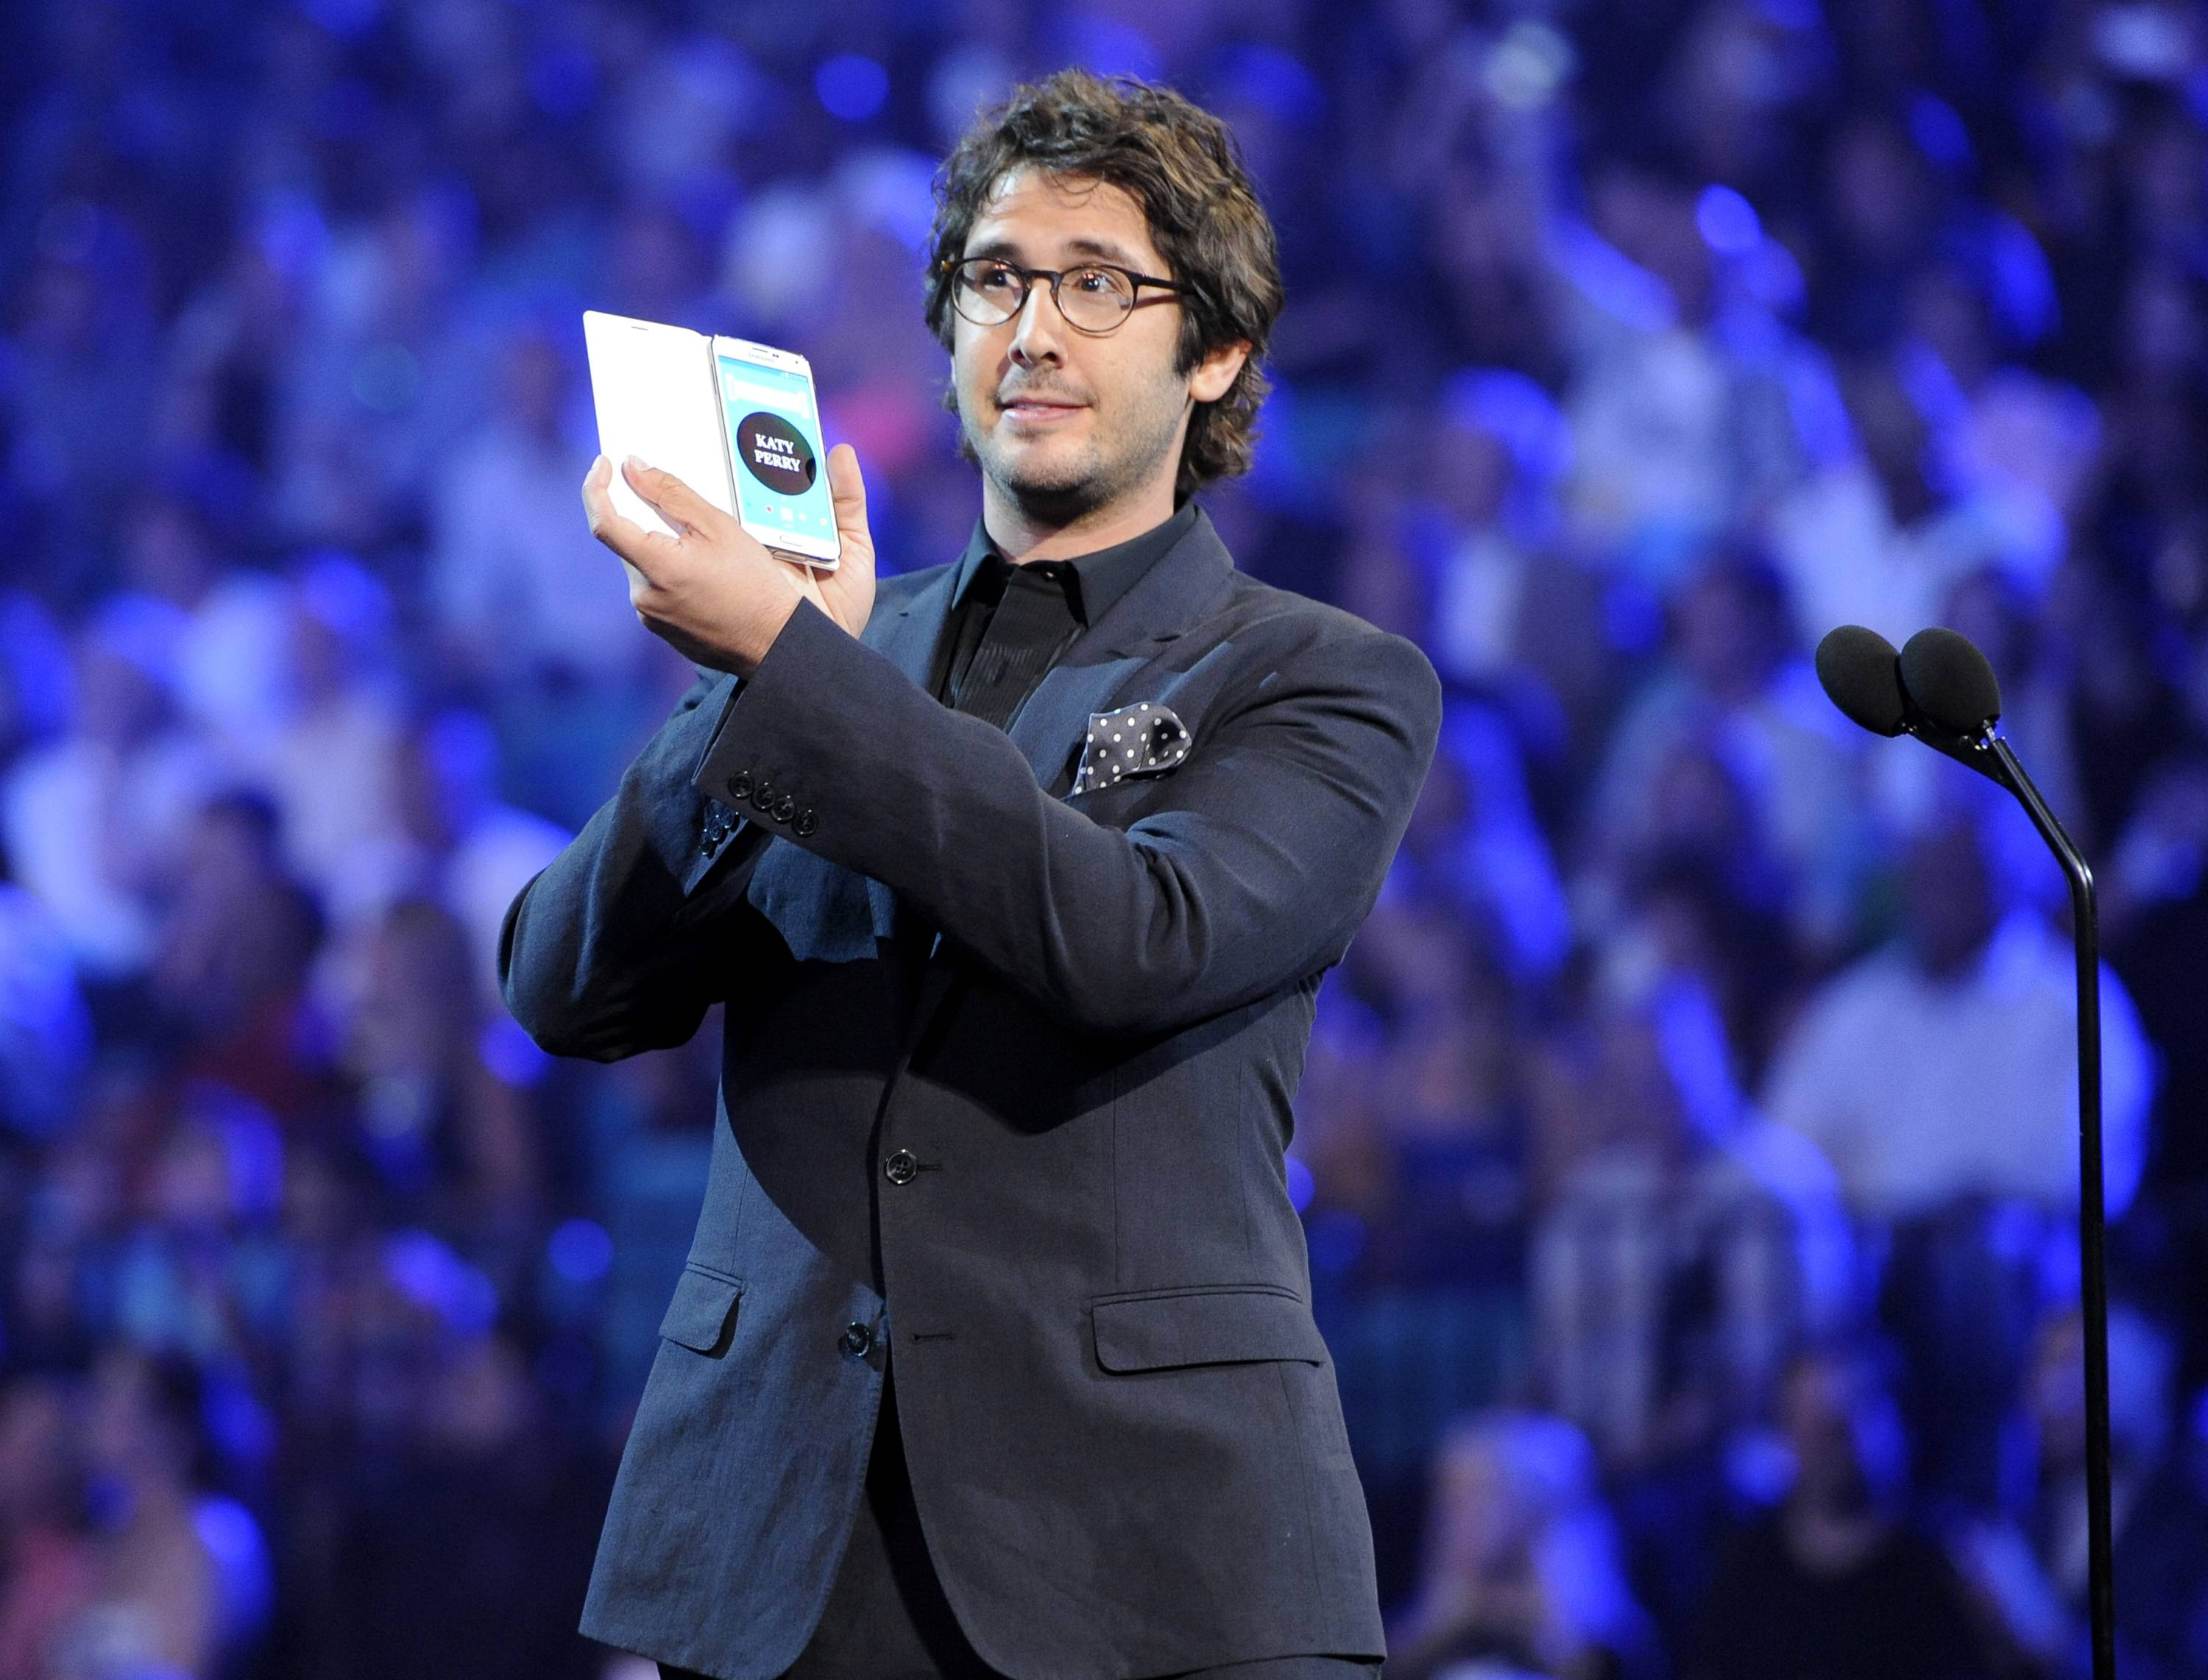 Josh Groban presents the award for top female artist to Katy Perry at the Billboard Music Awards at the MGM Grand Garden Arena on Sunday, May 18, 2014, in Las Vegas.